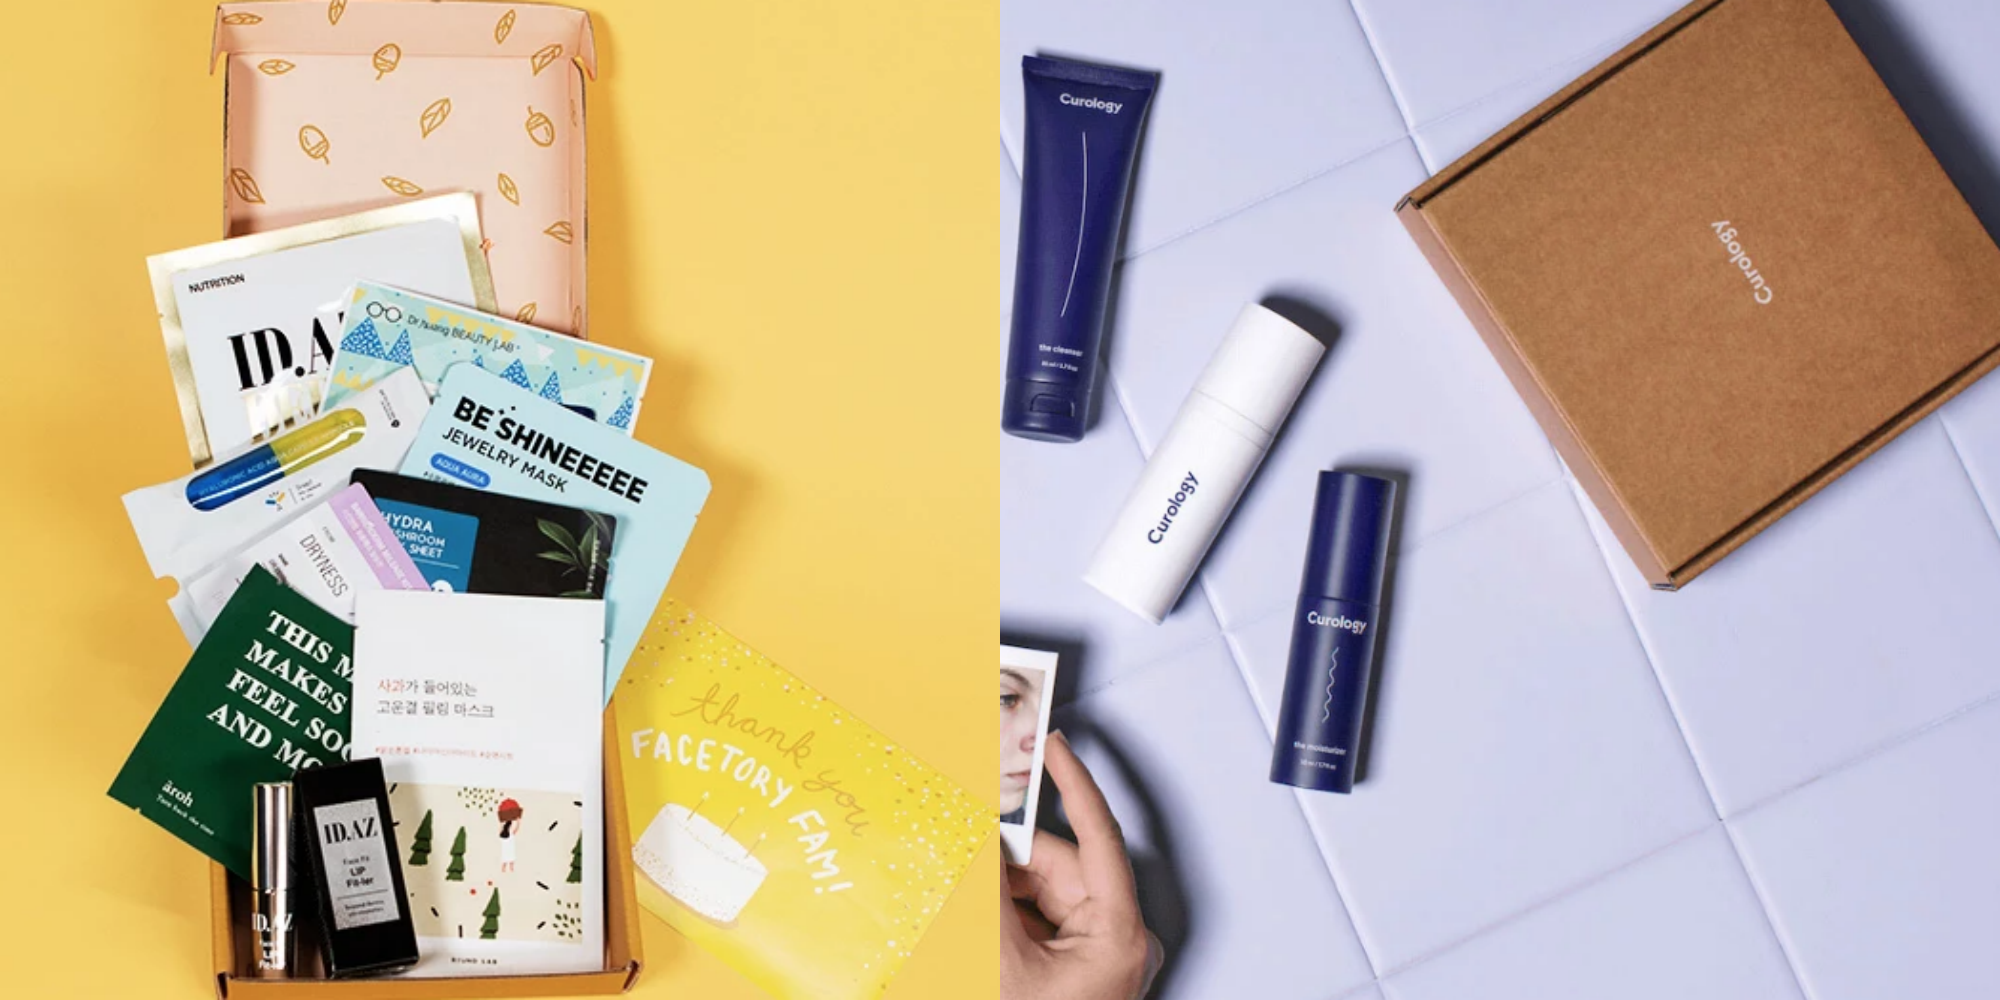 15 Best Beauty and Makeup Subscription Boxes to Gift This Holiday